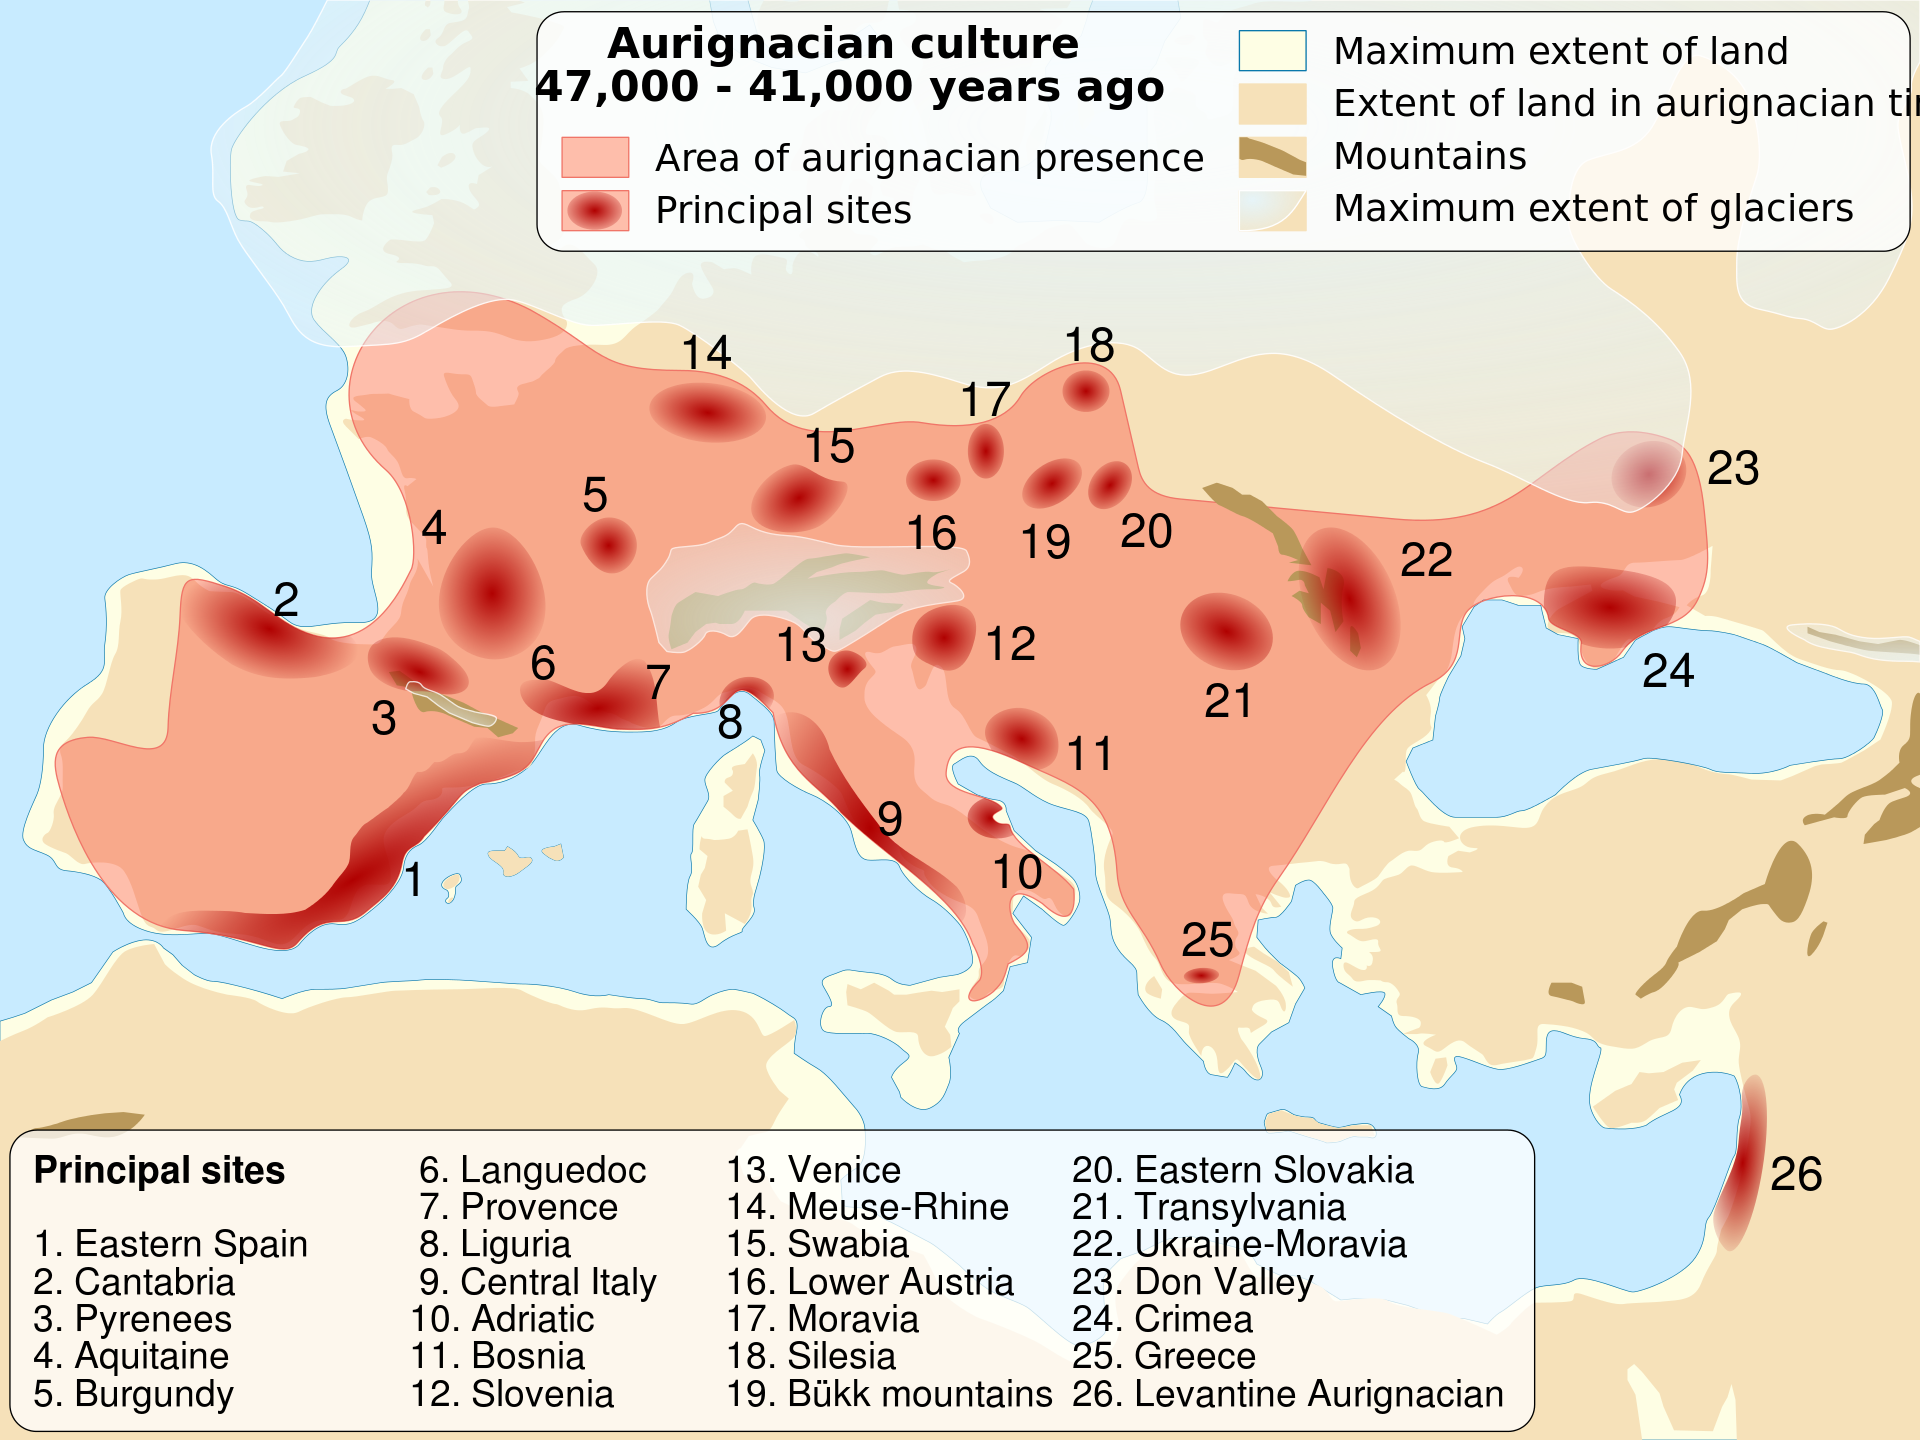 Aurignacian The Aurignacian culture (/ɔrɪɡˈneɪʃən/ or /ɔrɪnˈjeɪʃən/) is an archaeological culture of the Upper Palaeolithic, located in Europe and southwest Asia. It lasted broadly within the period from ca. 45,000 to 35,000 years ago (about 37,000 to 27,000 years ago on the uncalibrated radiocarbon timescale; between ca. 47,000 and 41,000 years ago using the most recent calibration of the radiocarbon timescale[1]). The name originates from the type site of Aurignac in the Haute-Garonne area…